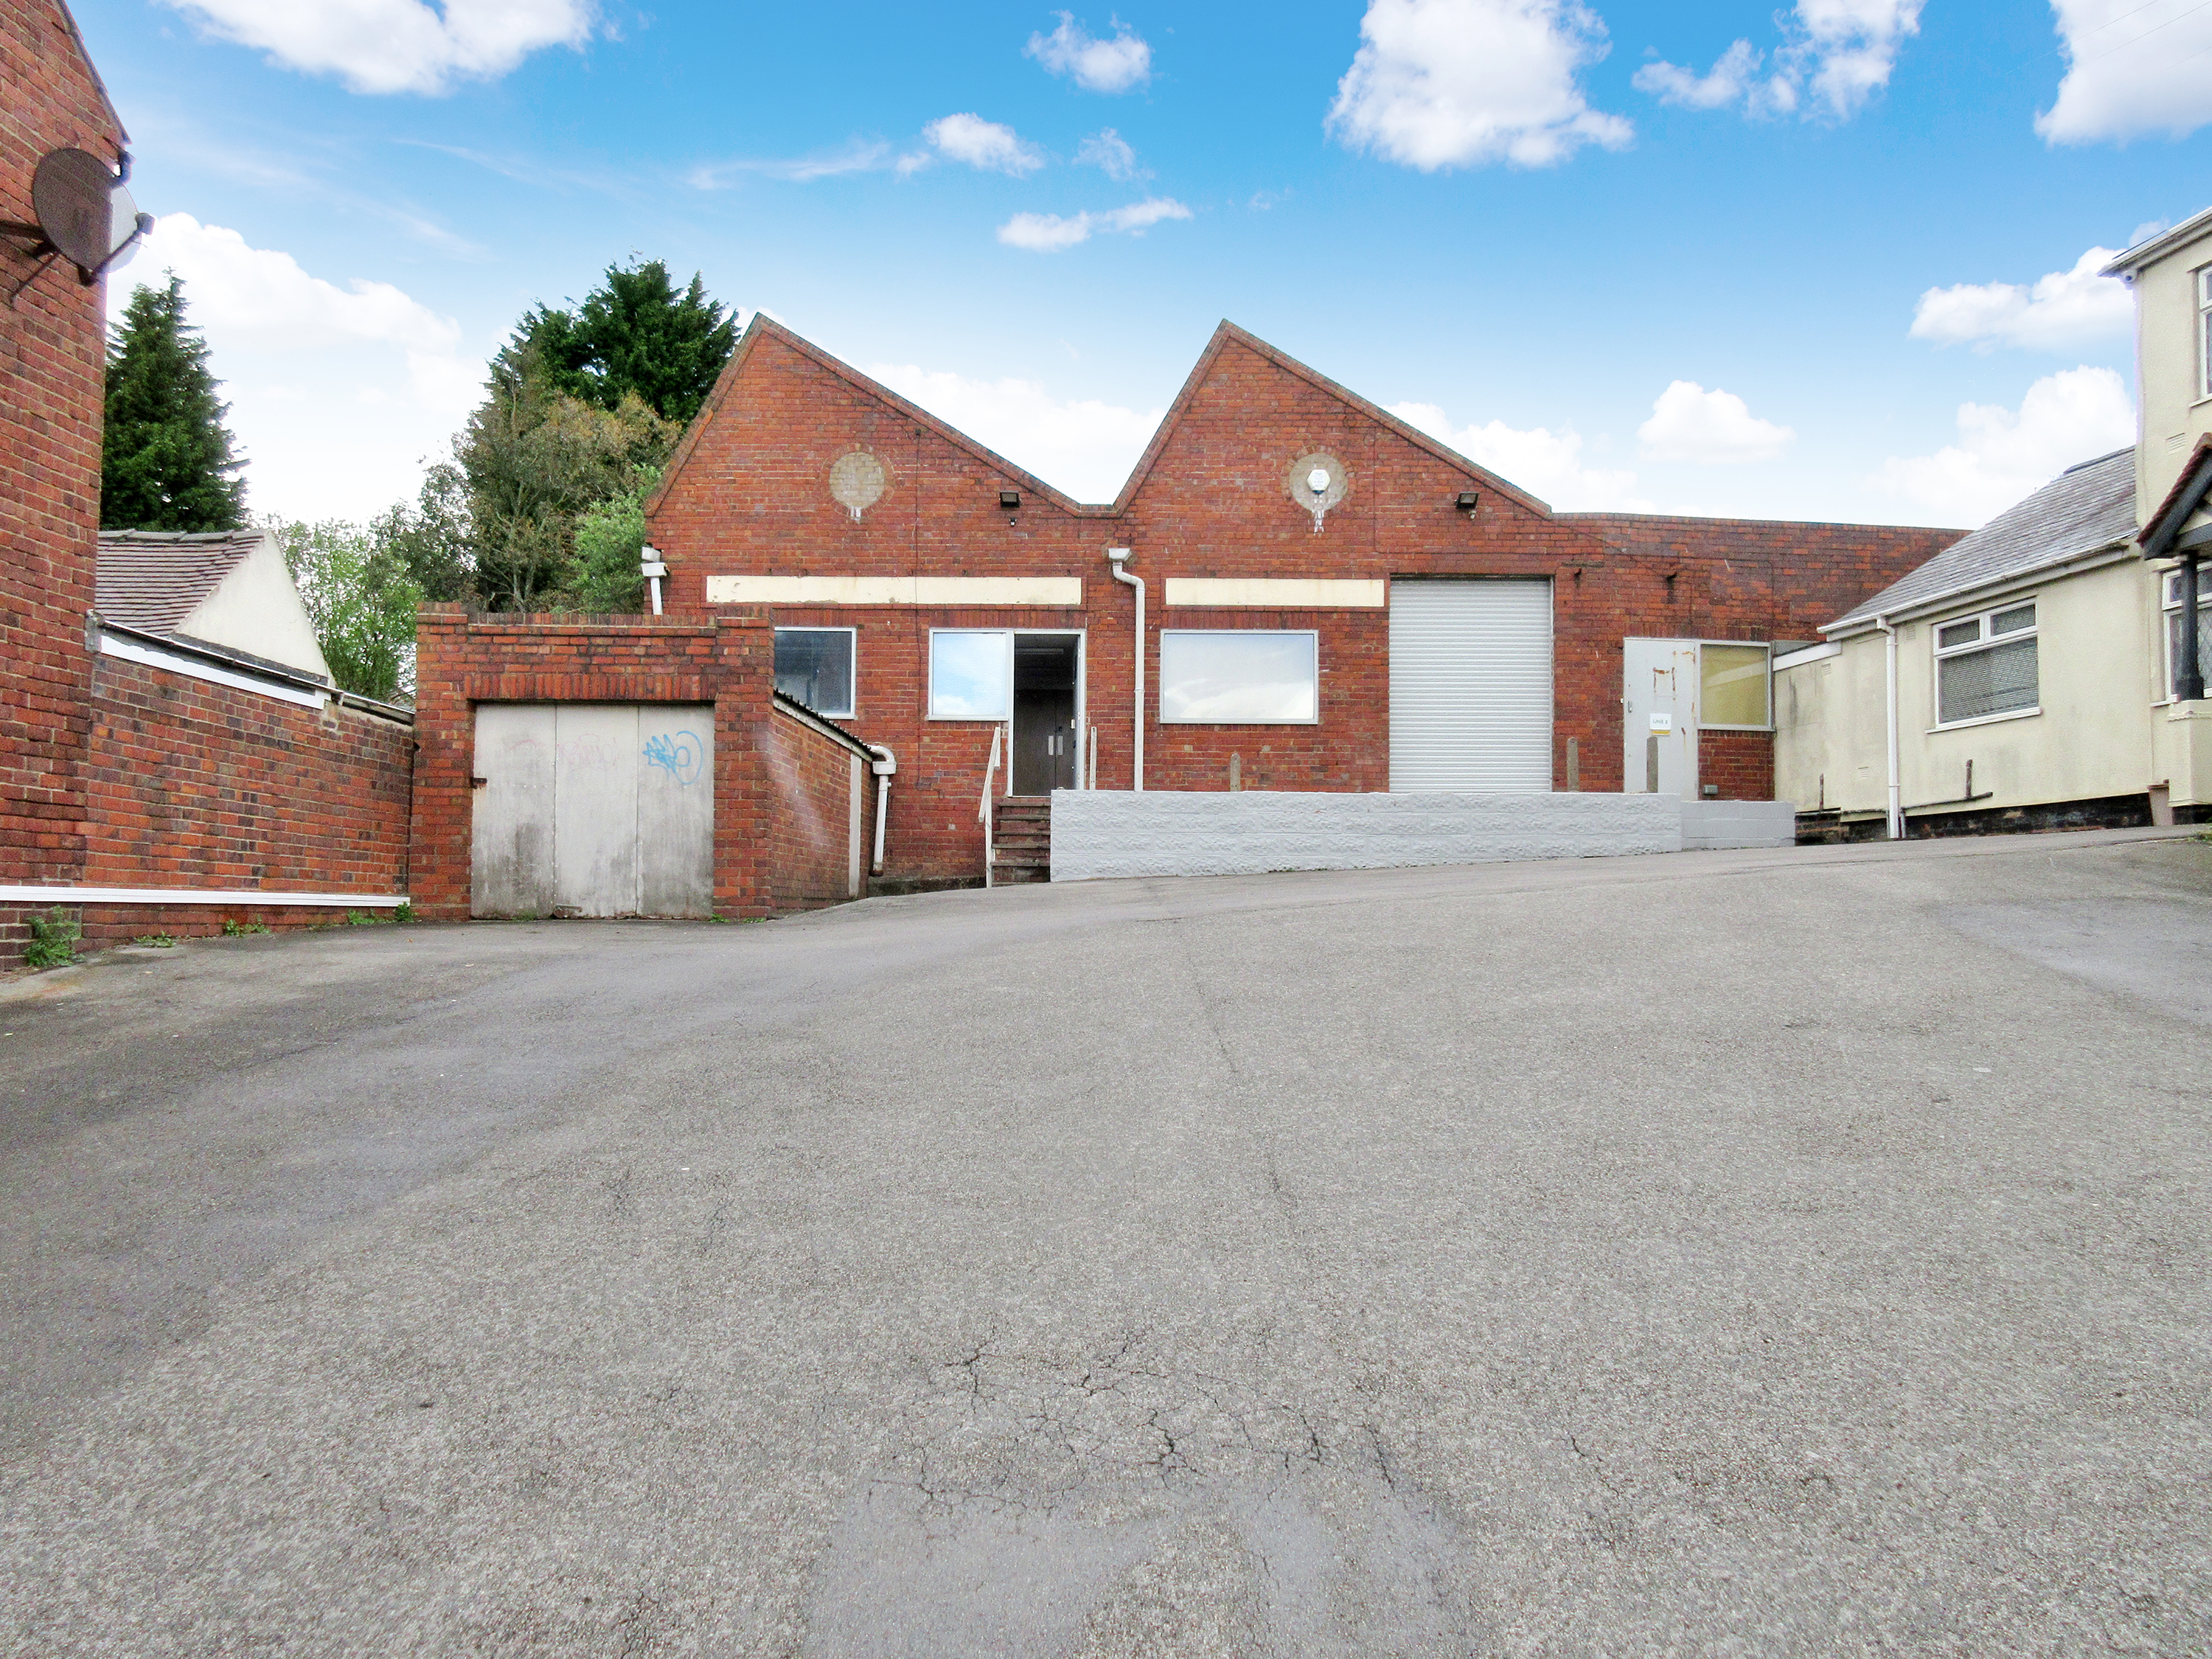 Unit 2, 153 Powke Lane Rowley Regis - Click for more details